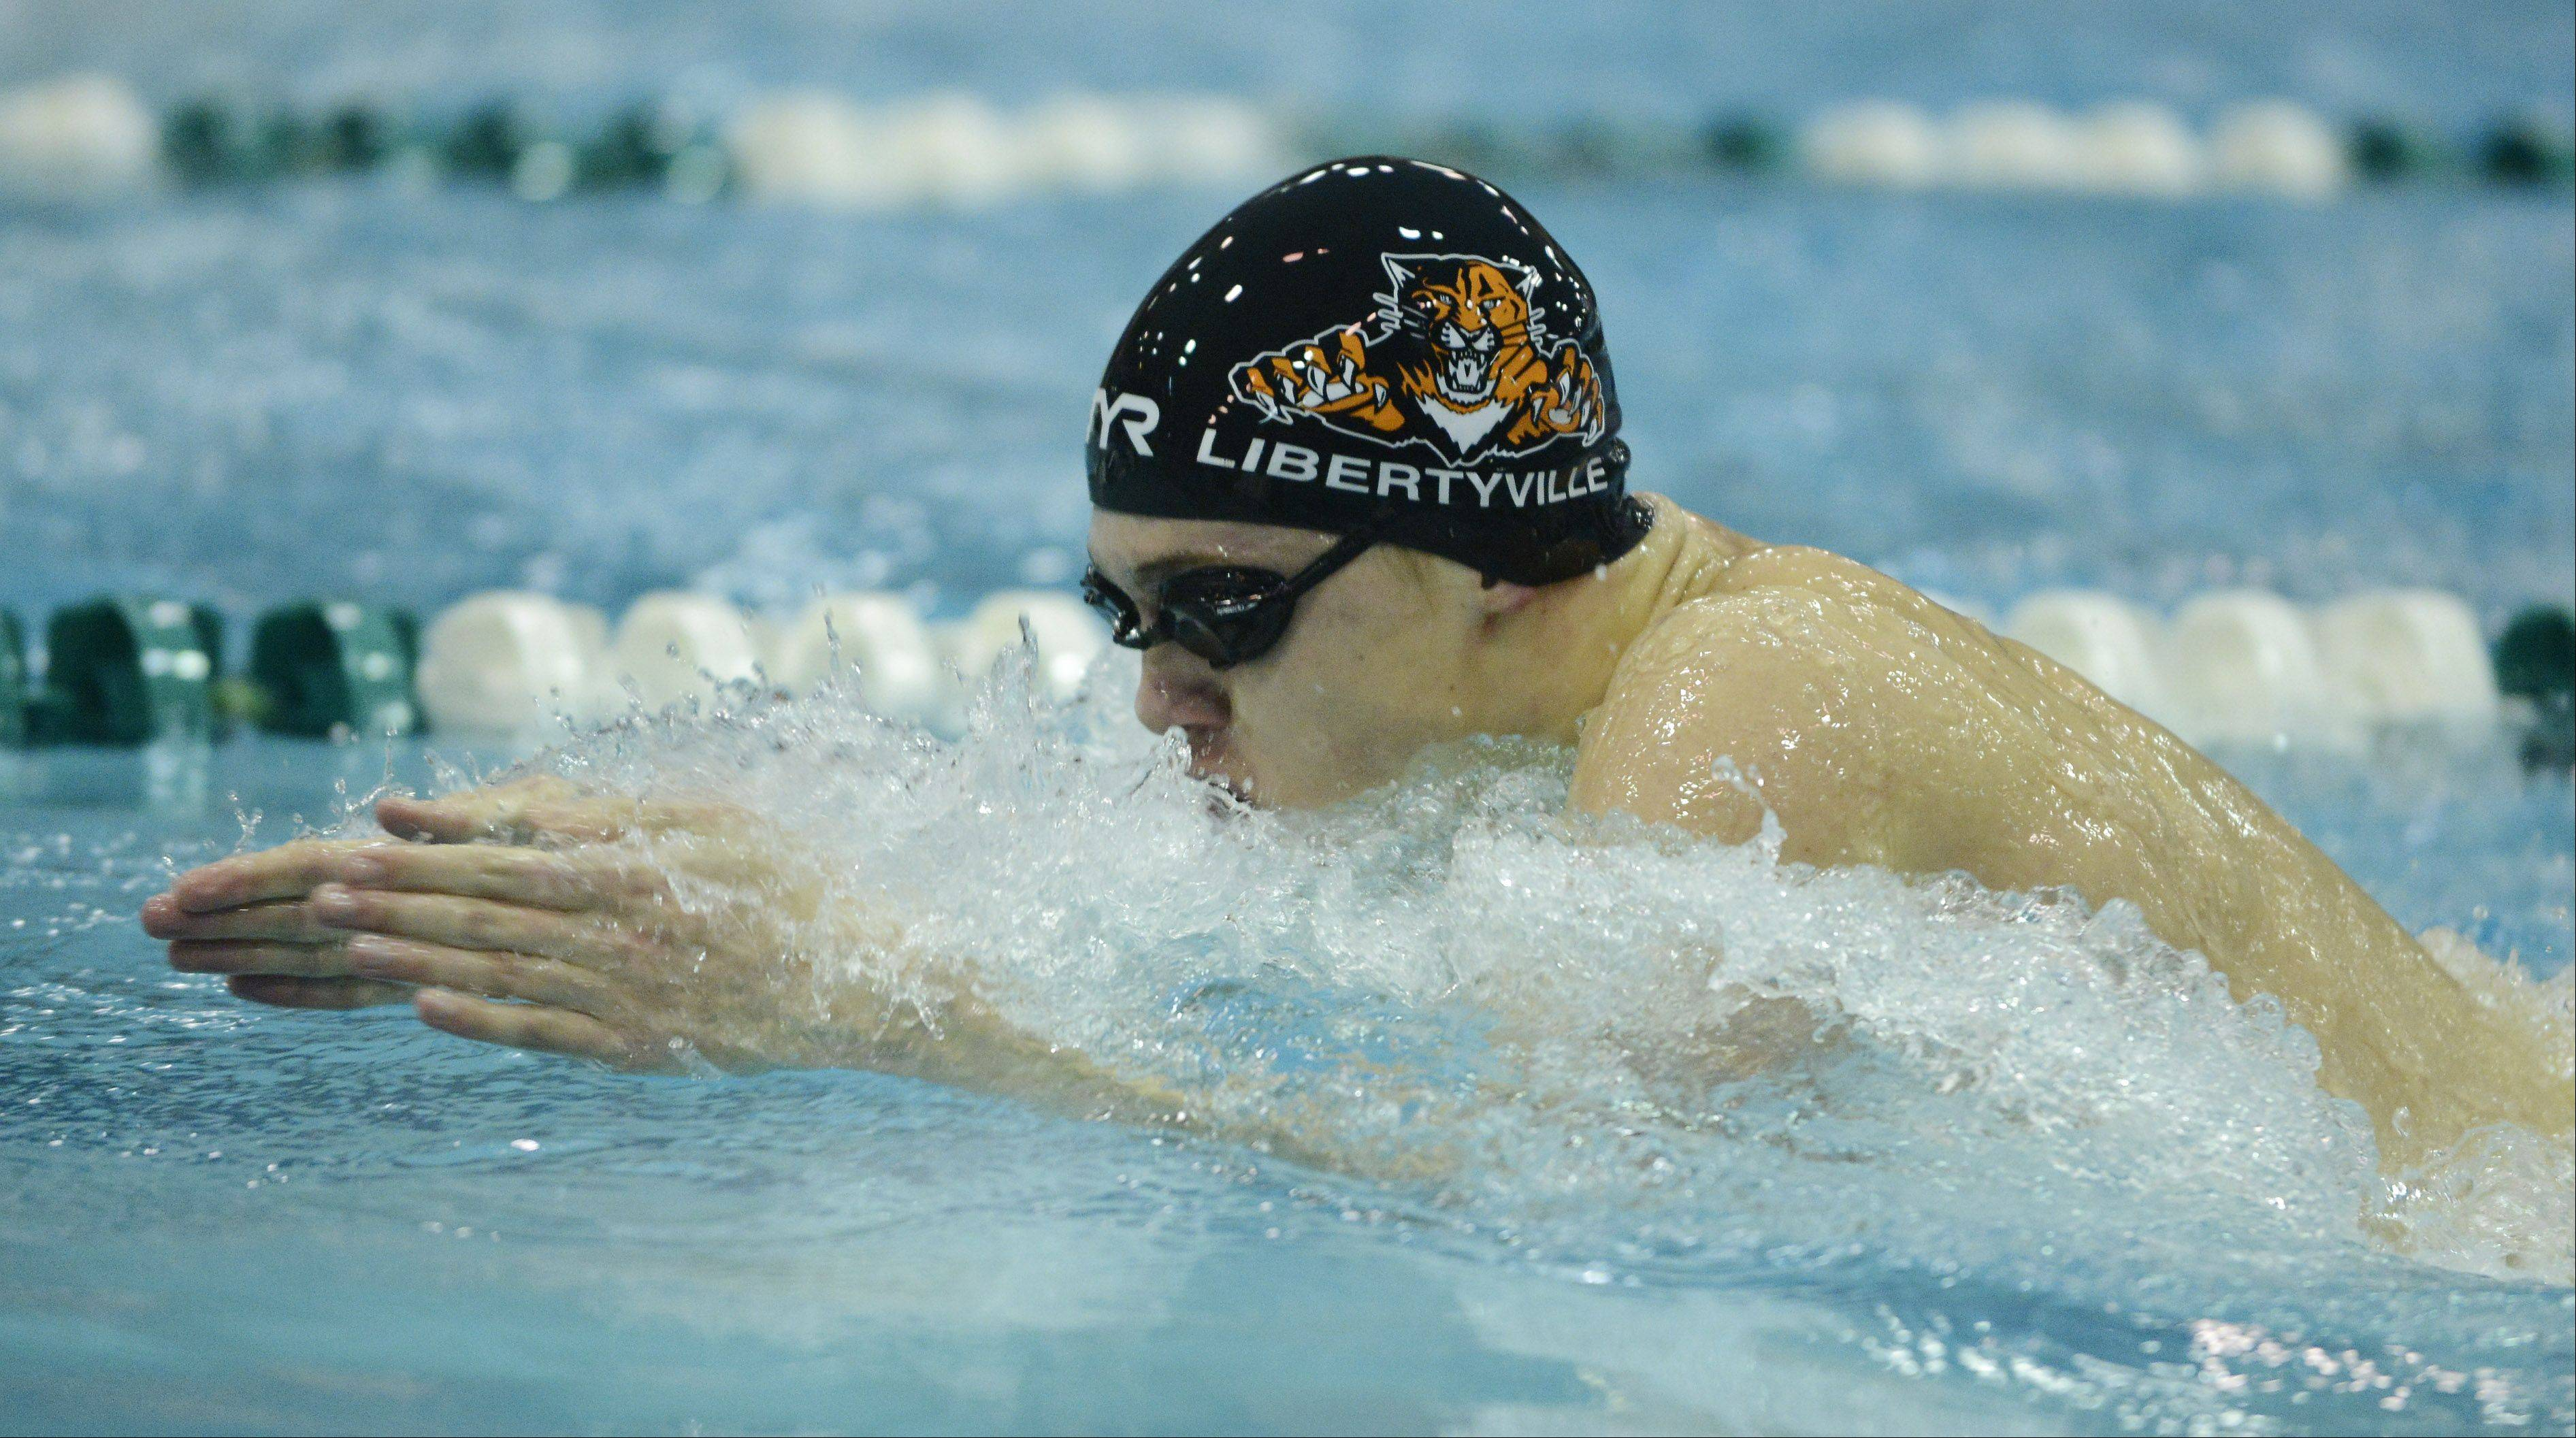 Libertyville's Atticus Rush swims breast stroke in the 200-yard medley relay during the boys state swimming finals at New Trier High School in Winnetka Saturday.